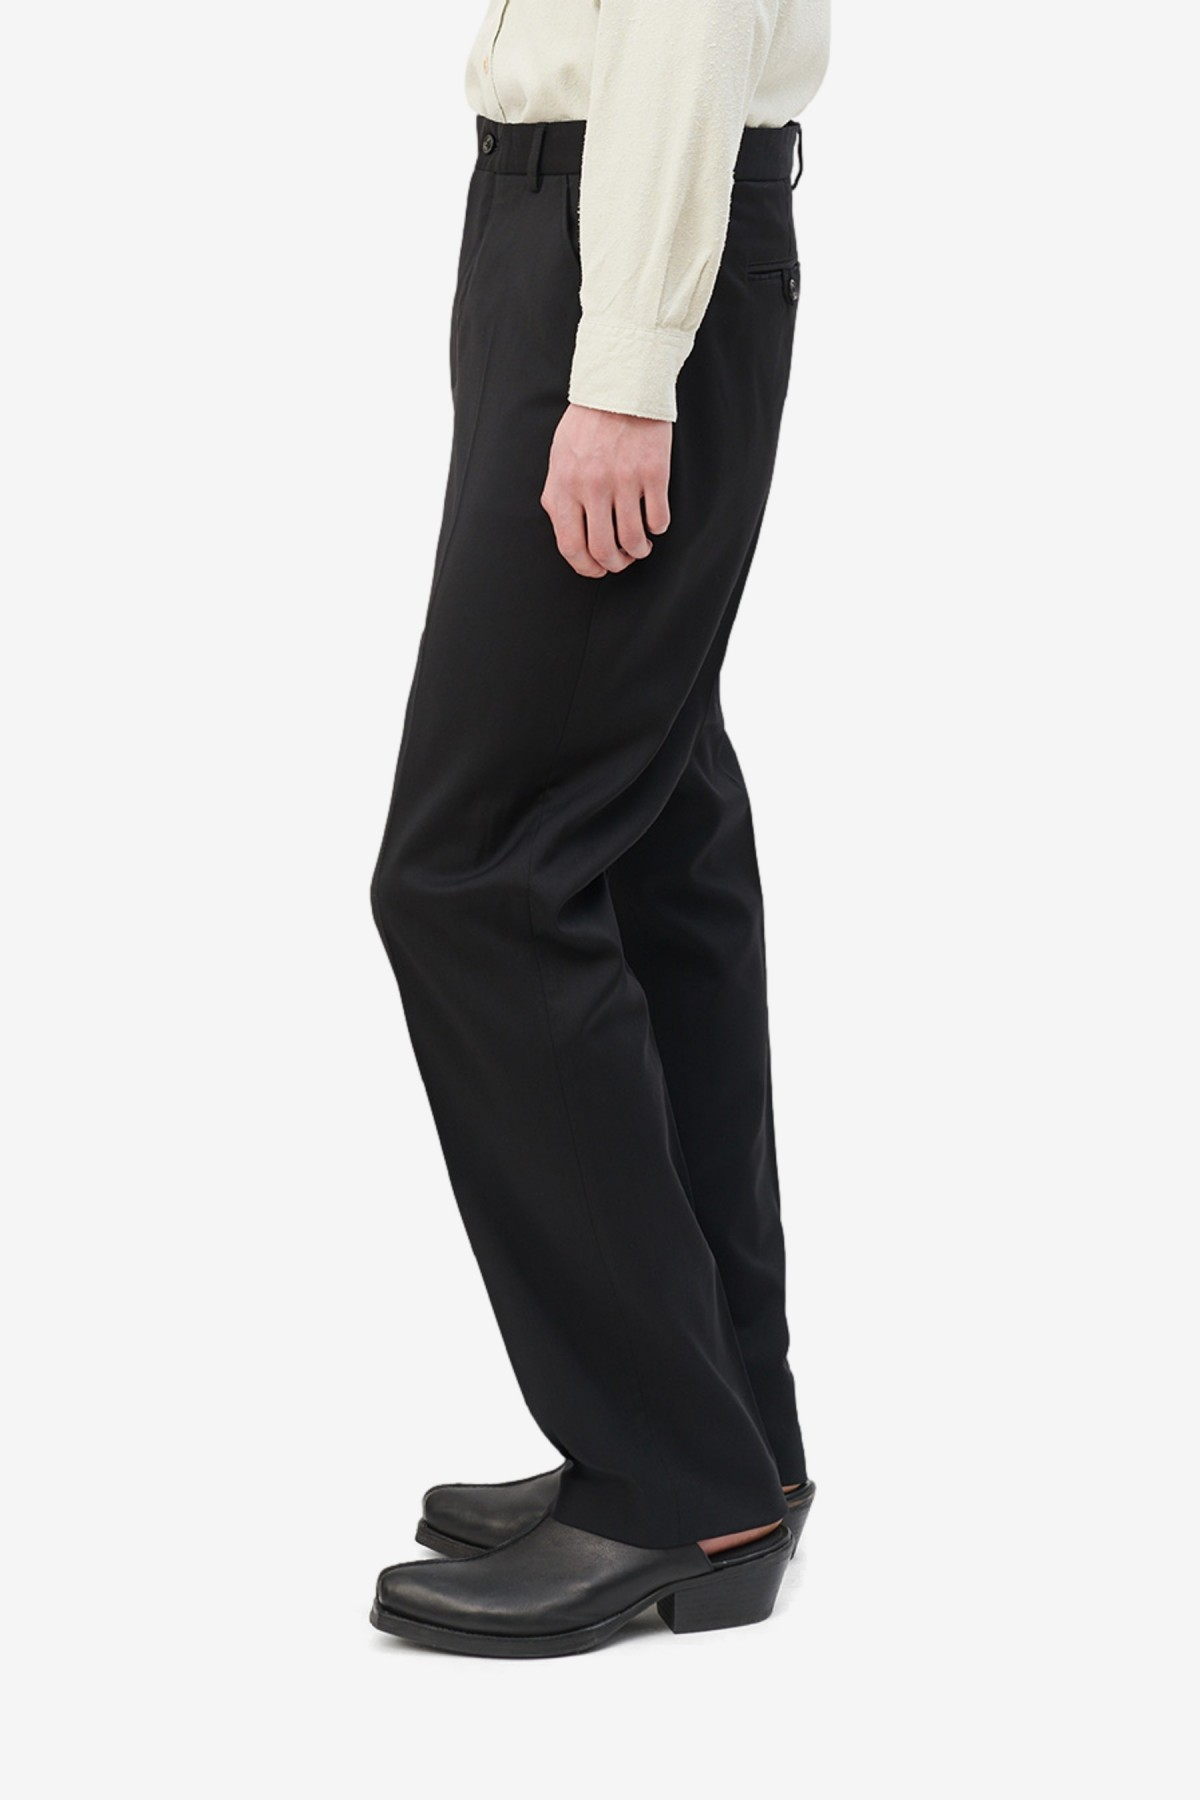 Our Legacy Chino 22 in Black Worsted Wool